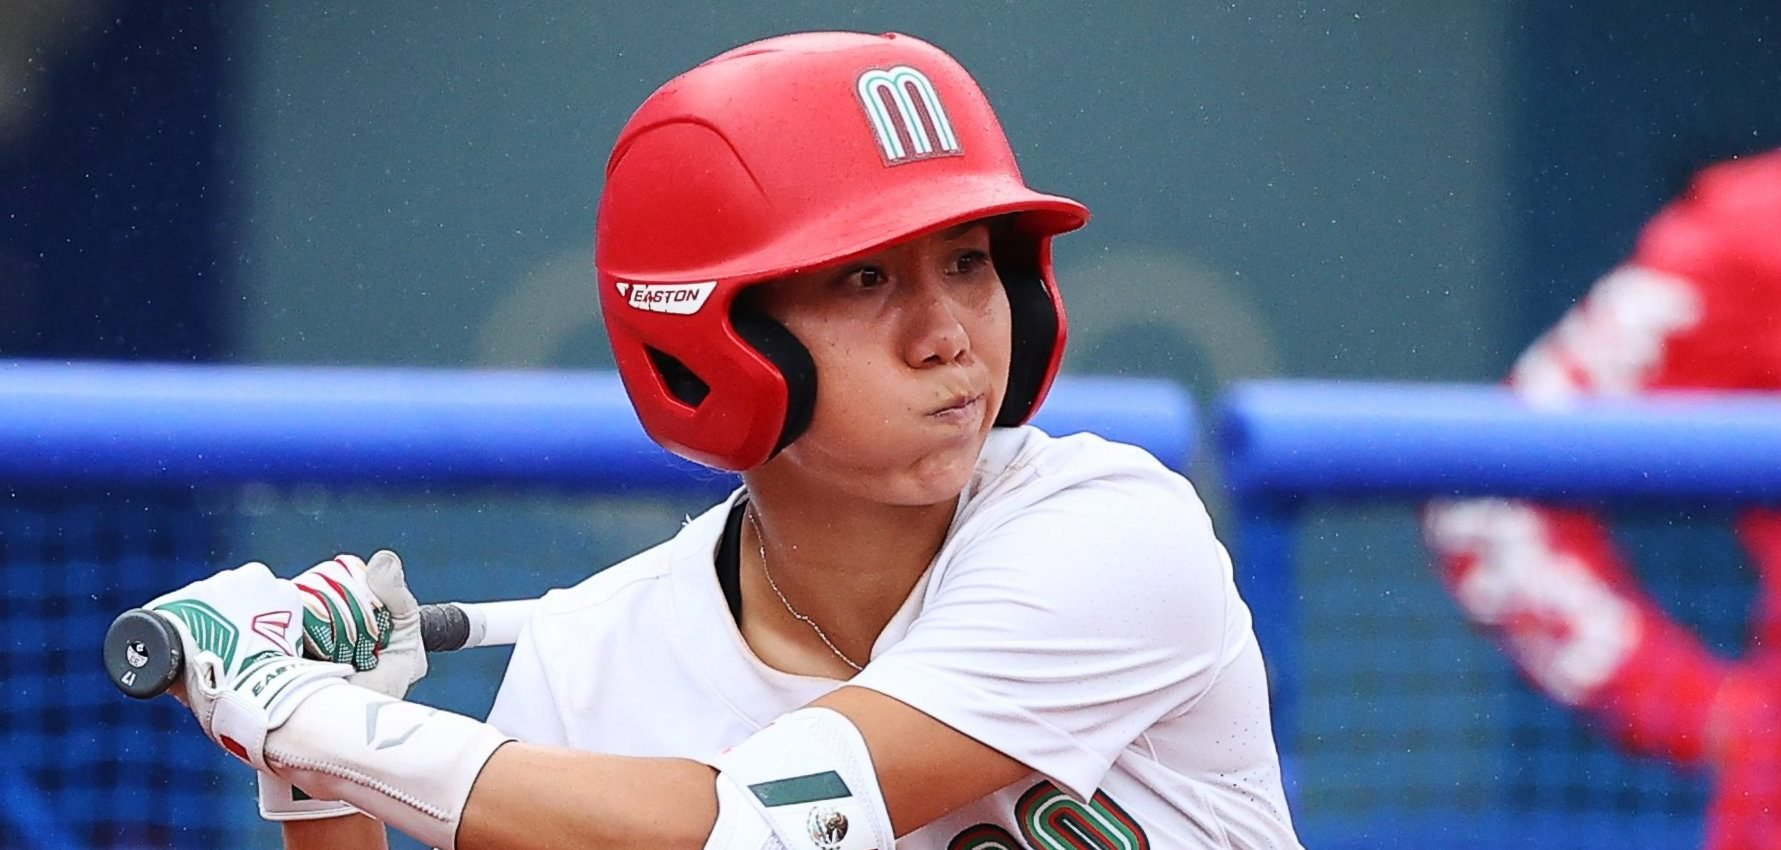 Olympics-Softball-Japan win gold in 2-0 shutout of United States; Canada take bronze